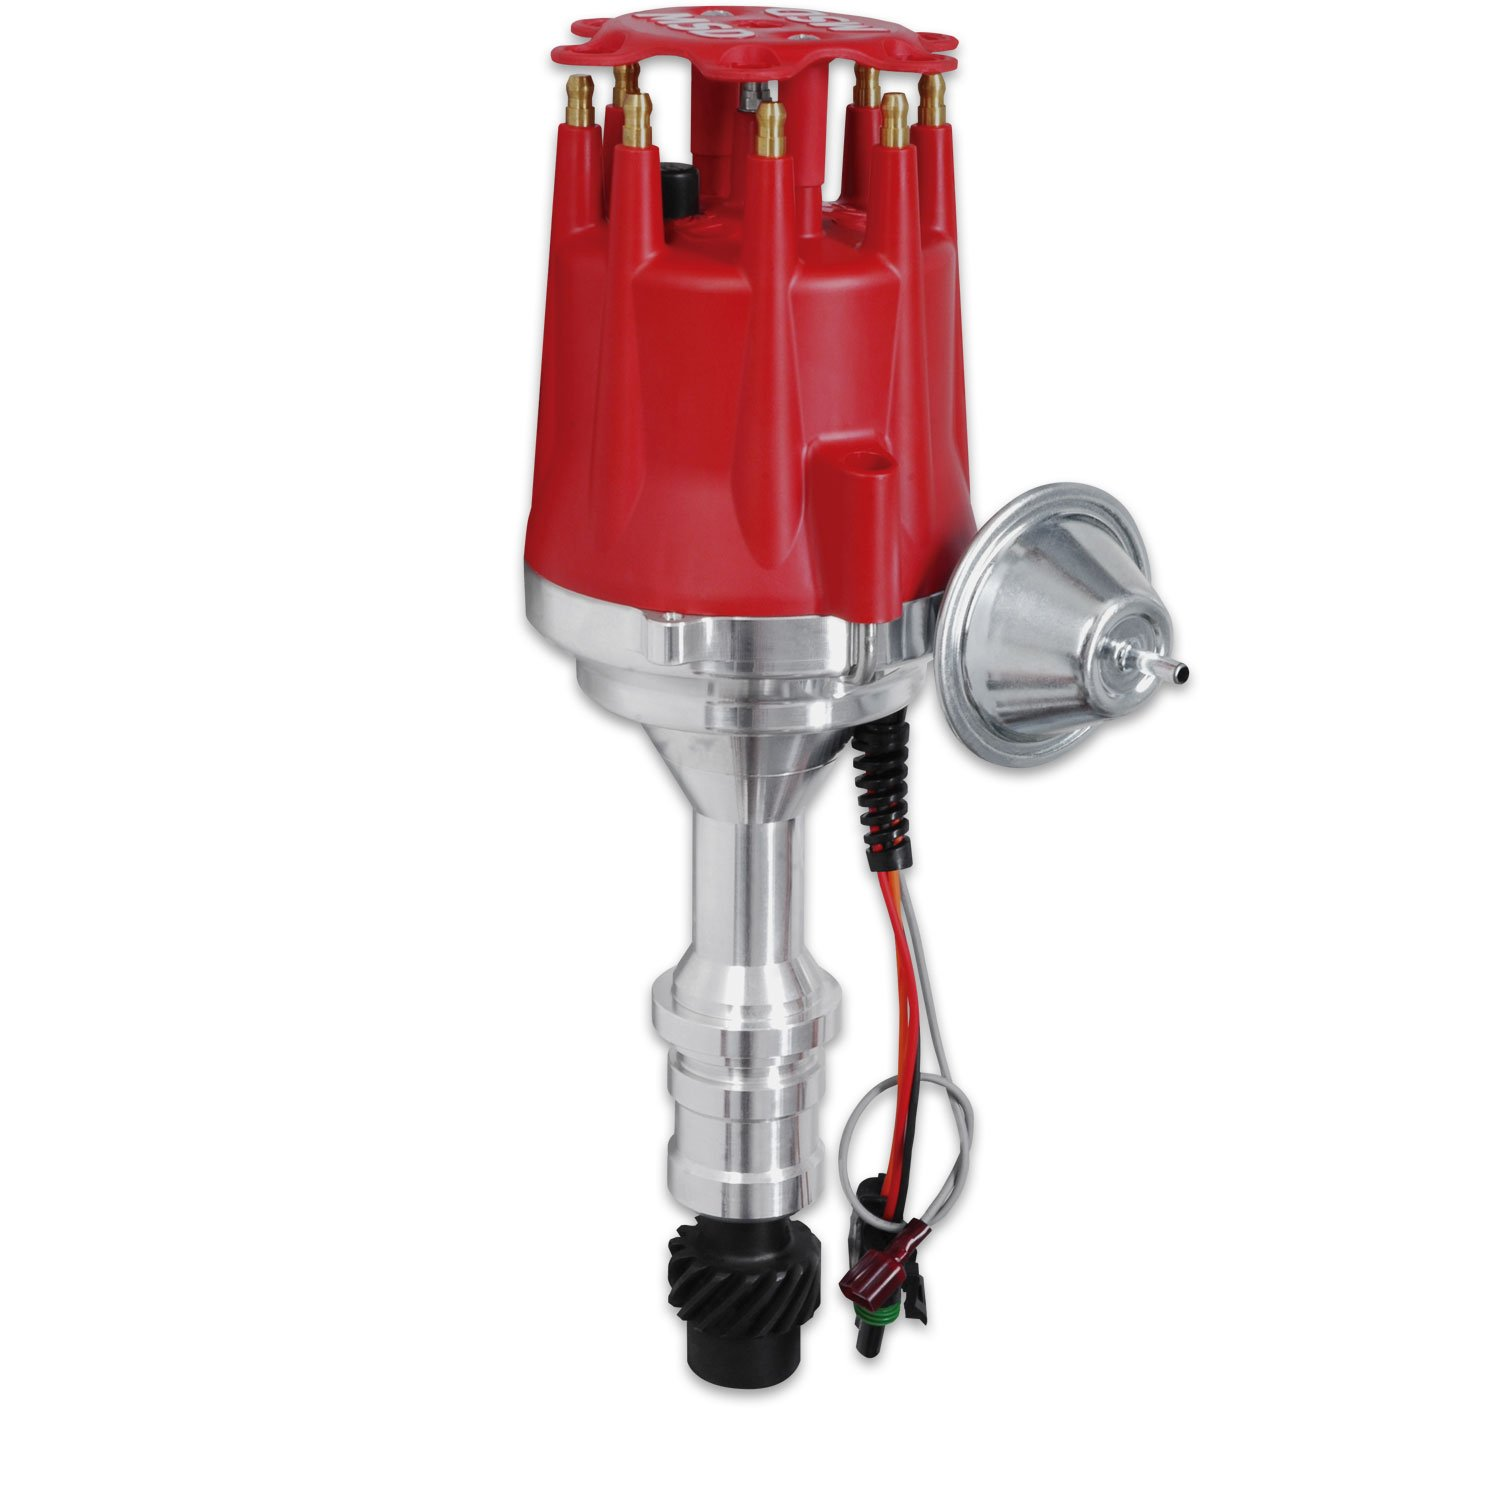 hight resolution of 8529 oldsmobile v8 ready to run distributor image